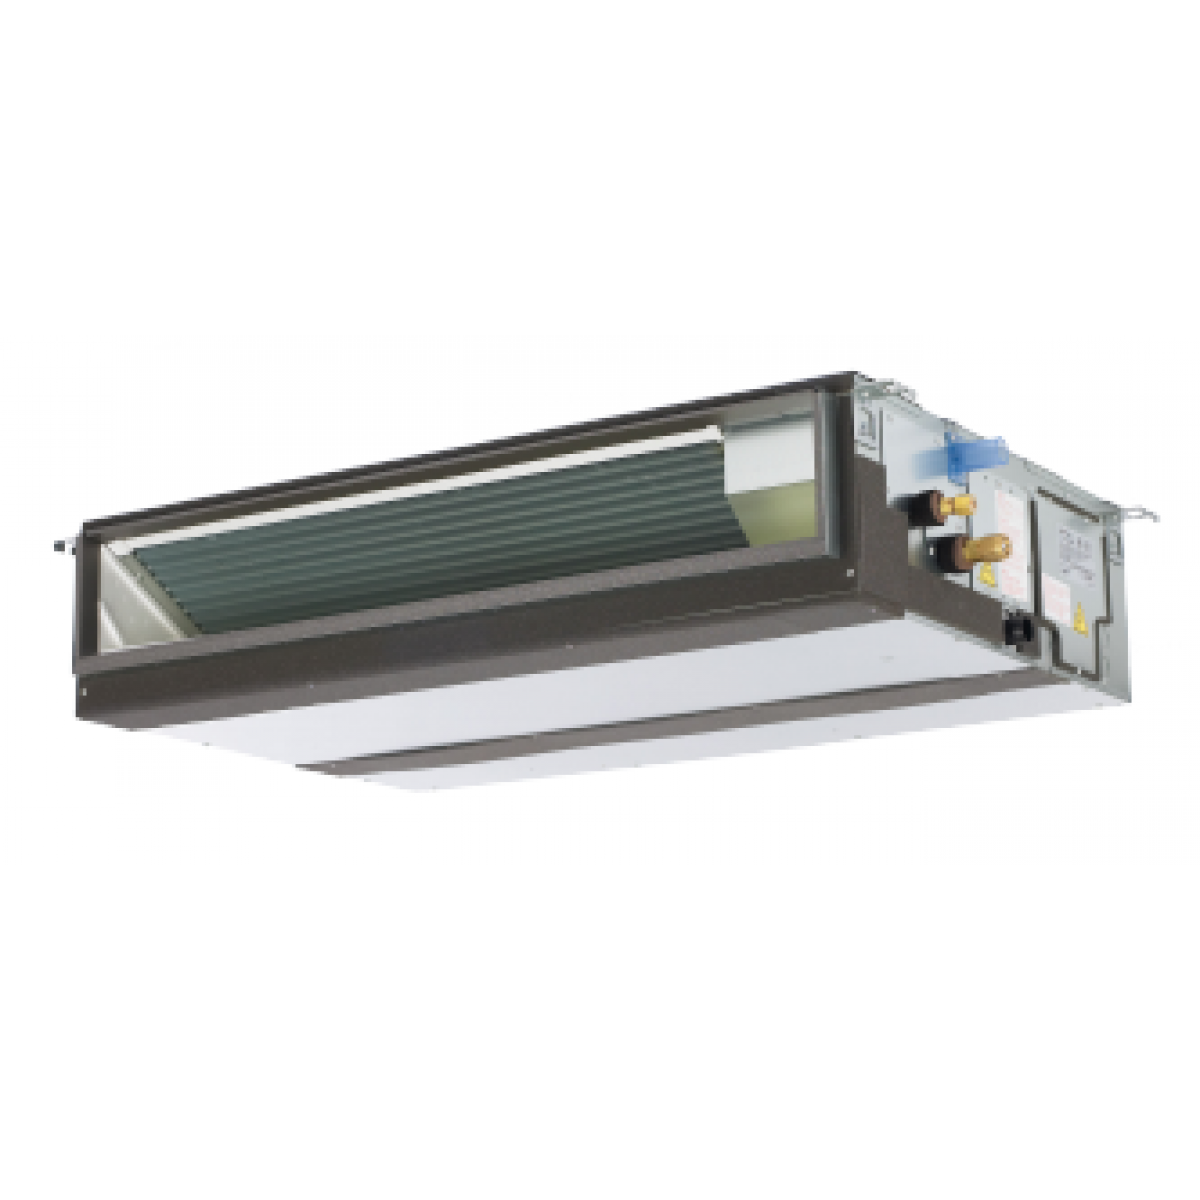 Mitsubishi P Series 36k Btu Ductless Mini Split Air